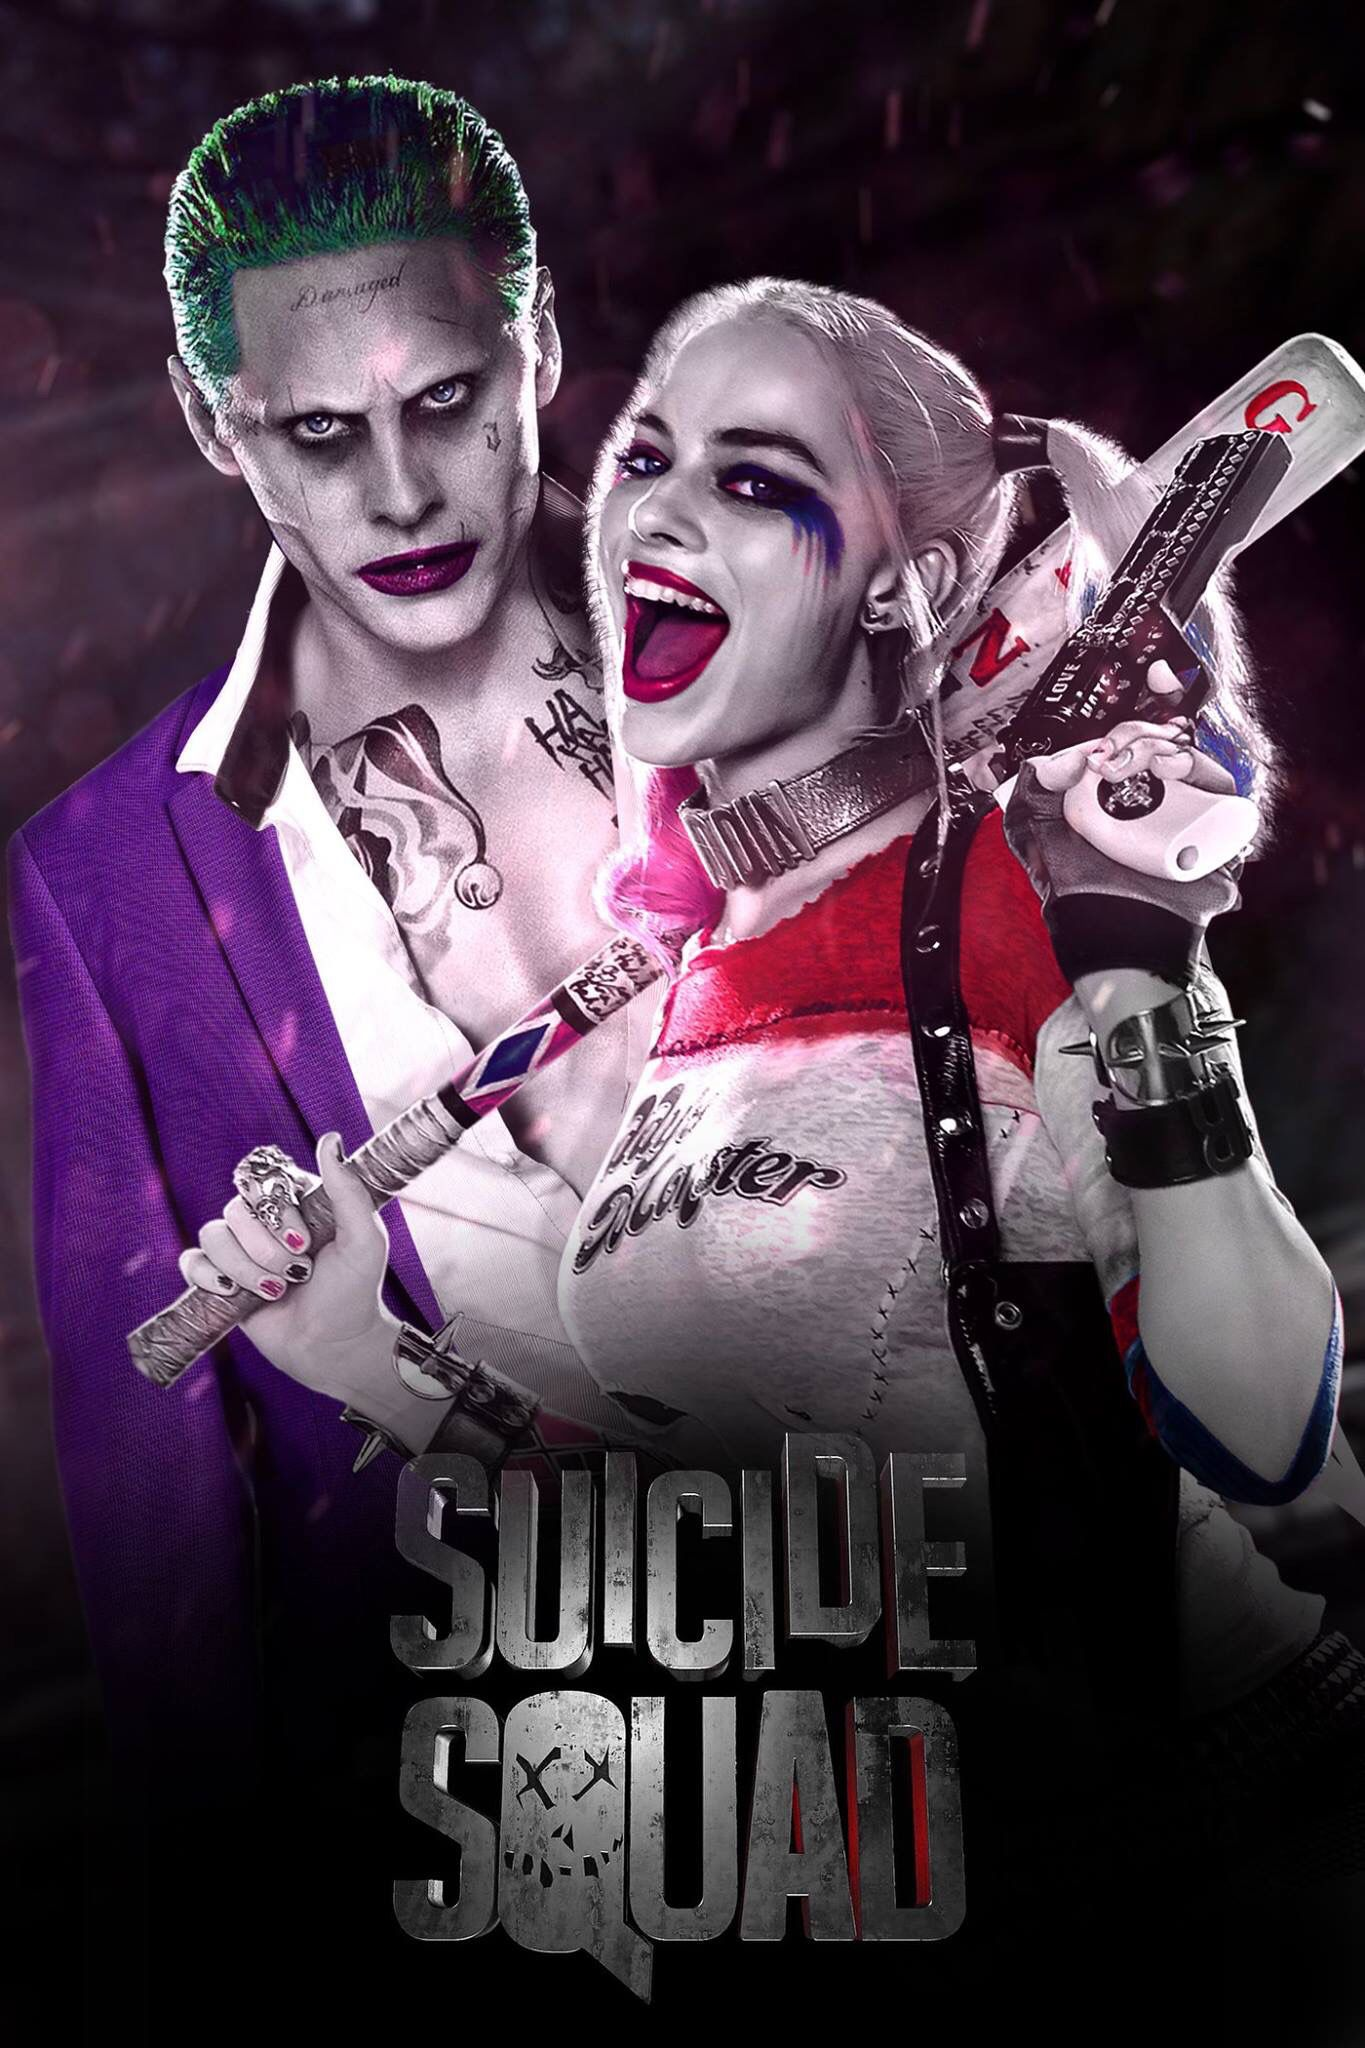 SUICIDE SQUAD Harley Quinn. The Joker